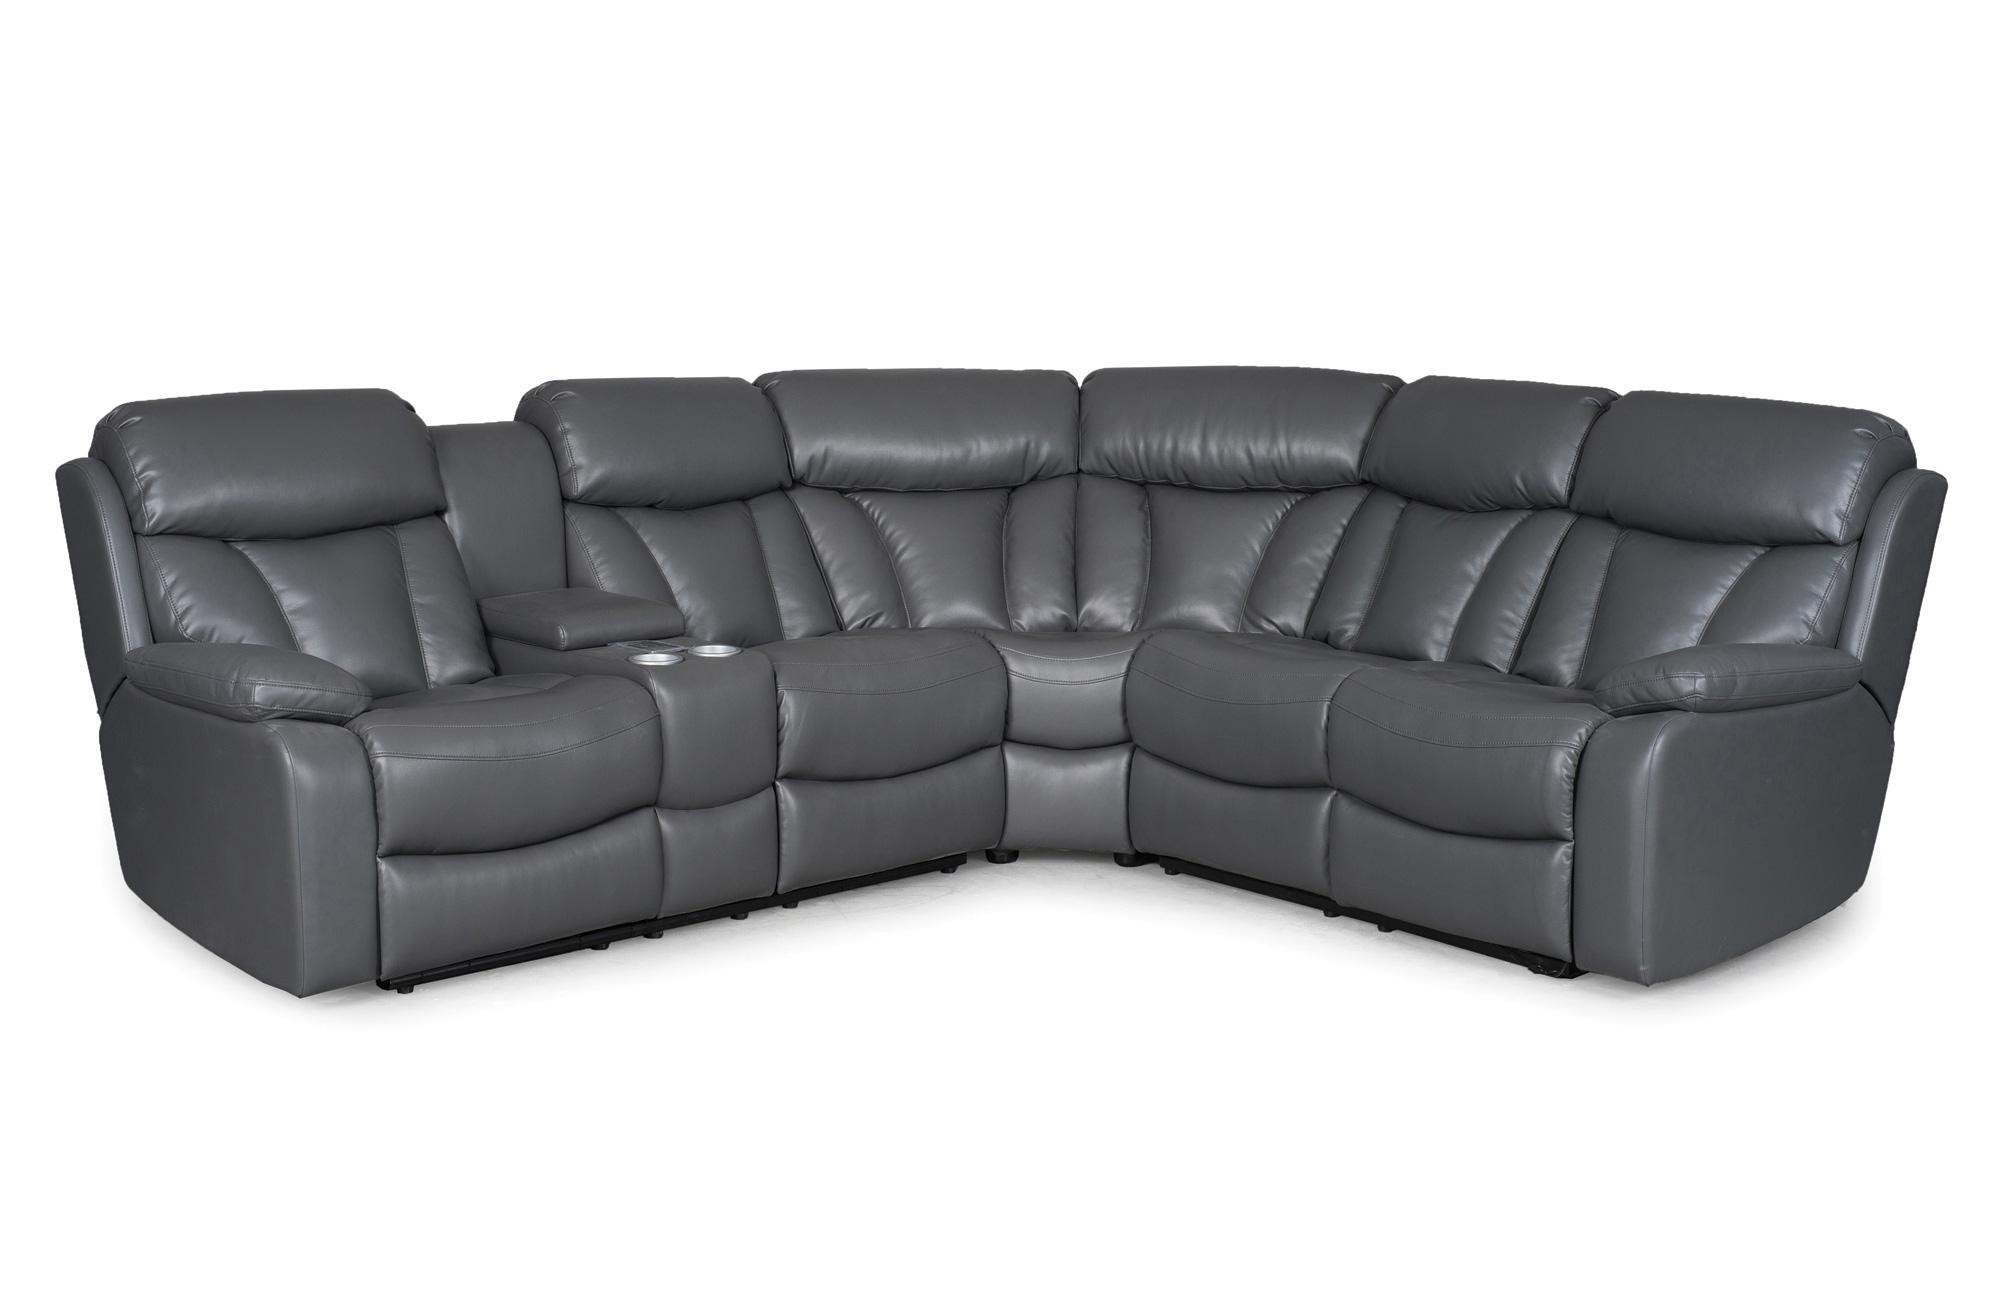 Synergy Home Furnishings Tustin Power Motion Sectional 411344